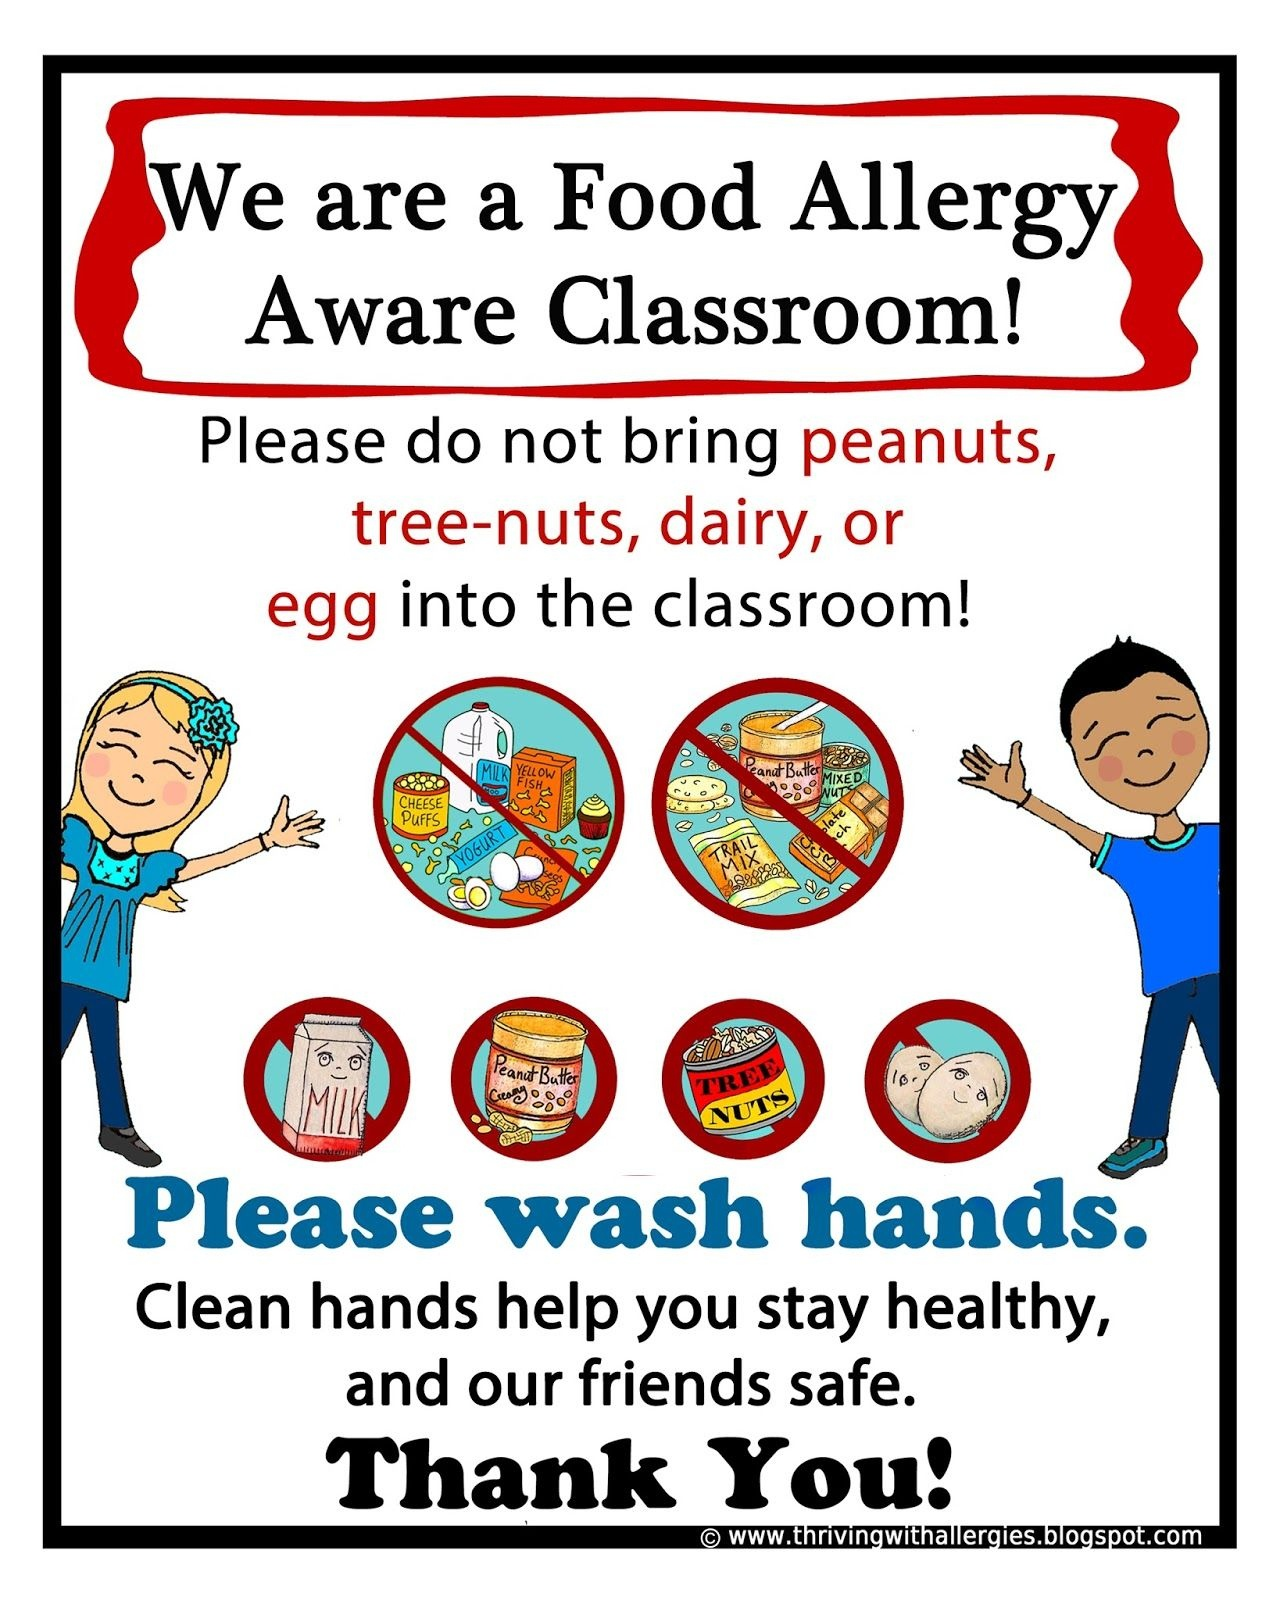 Thriving With Allergies: Food Allergy Alert Daycare/school Handouts - Printable Peanut Free Classroom Signs